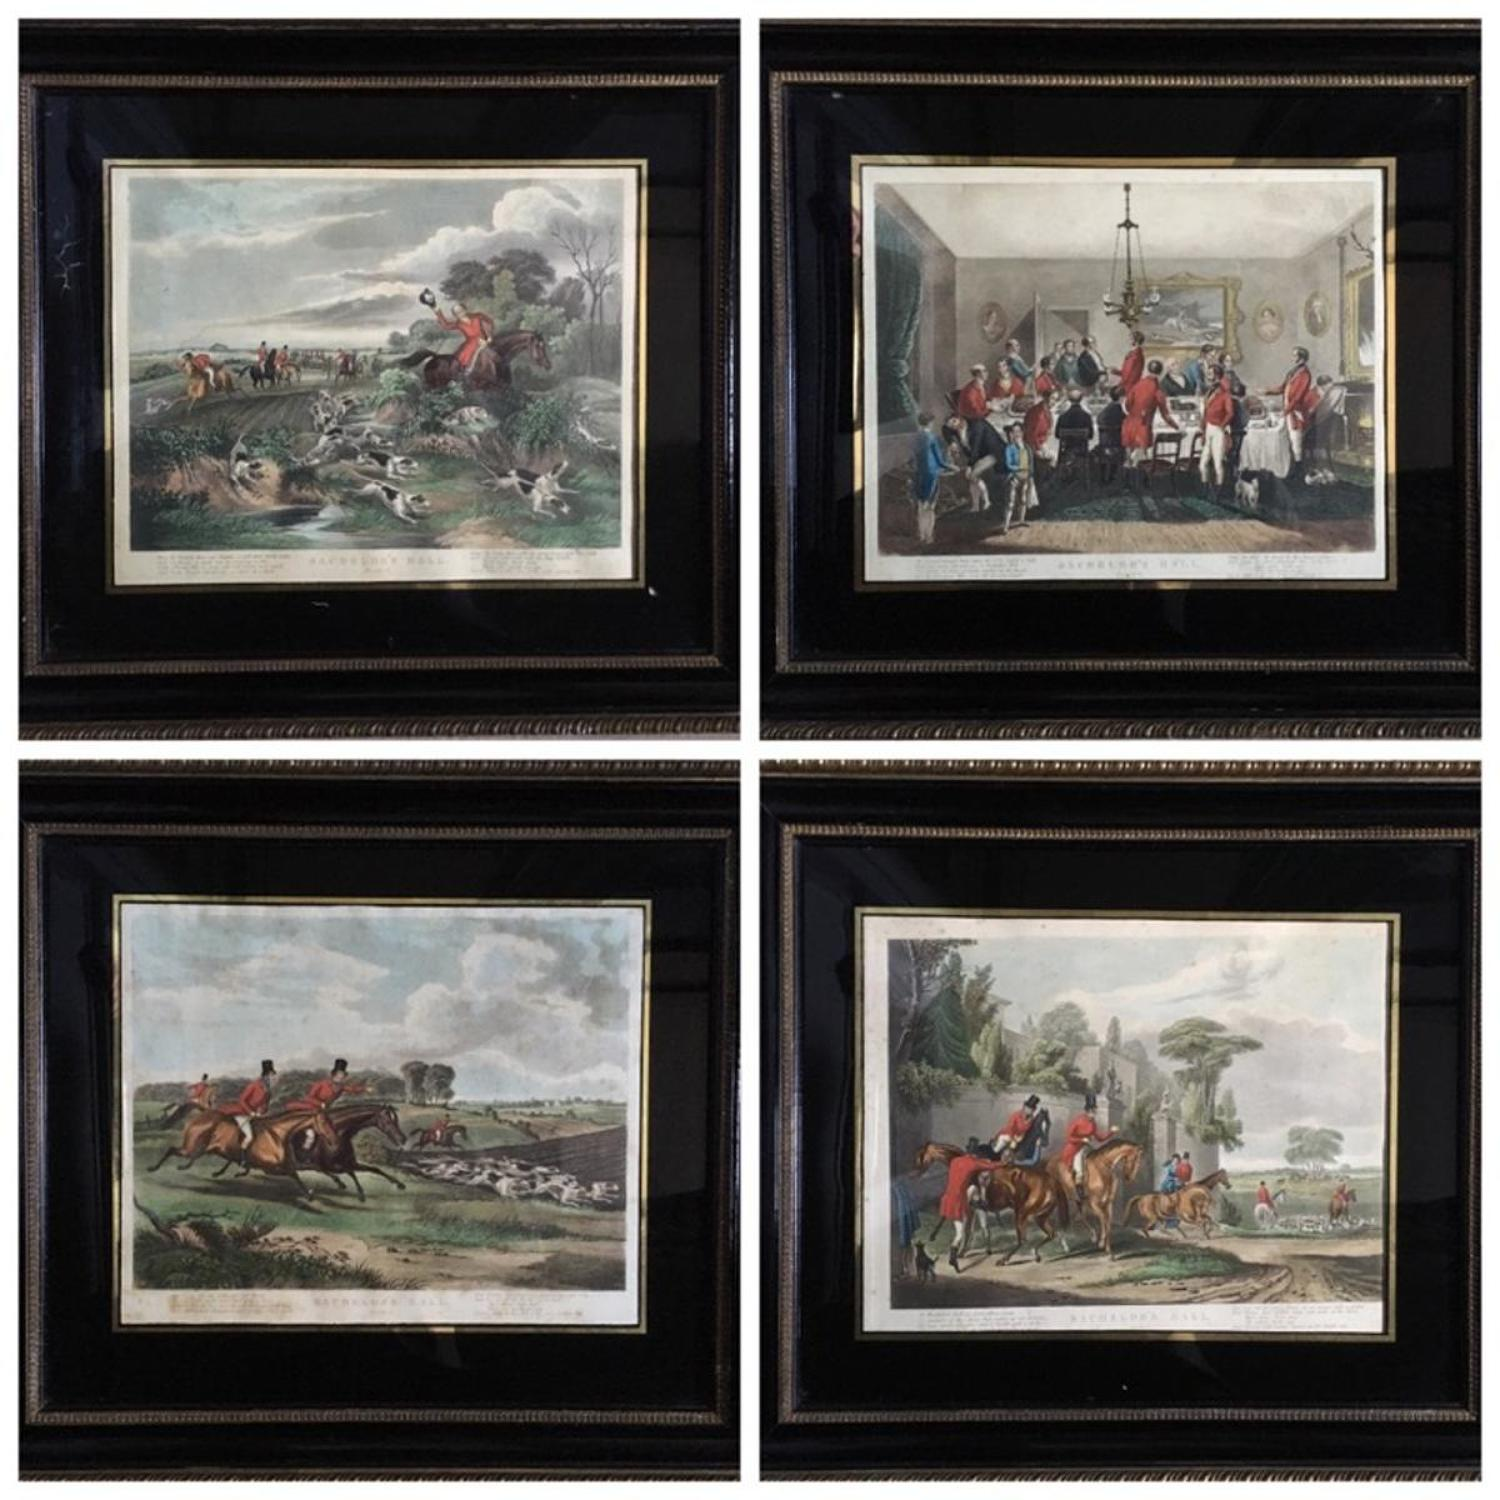 Five Hunting Prints - Bachelor's Hall after F.C. Turner